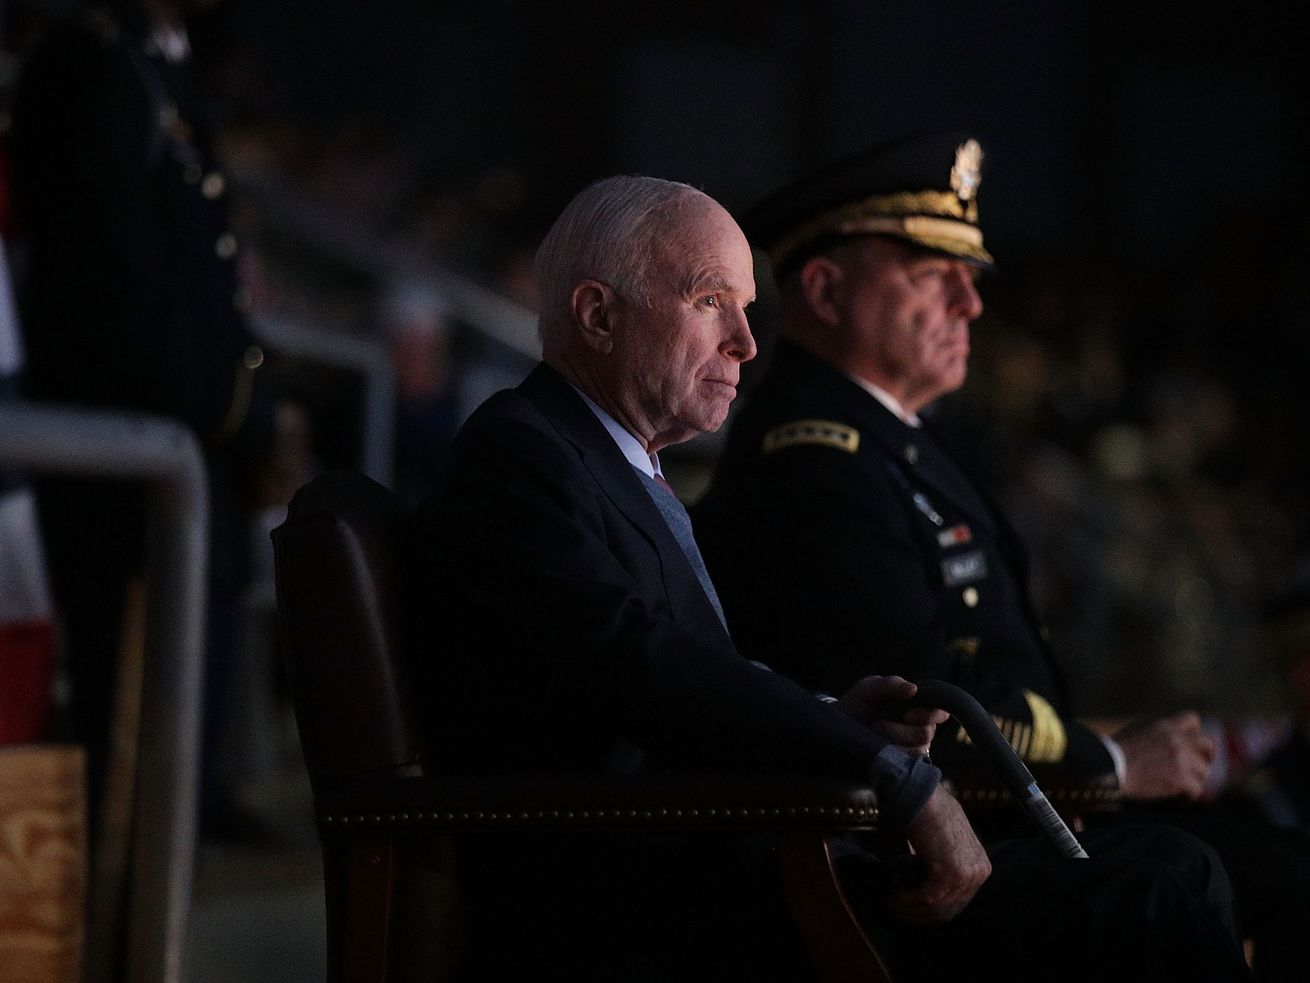 Sen. John McCain watches a special Twilight Tattoo performance with US Army Chief of Staff Gen. Mark A. Milley at Fort Myer in Arlington, Virginia.